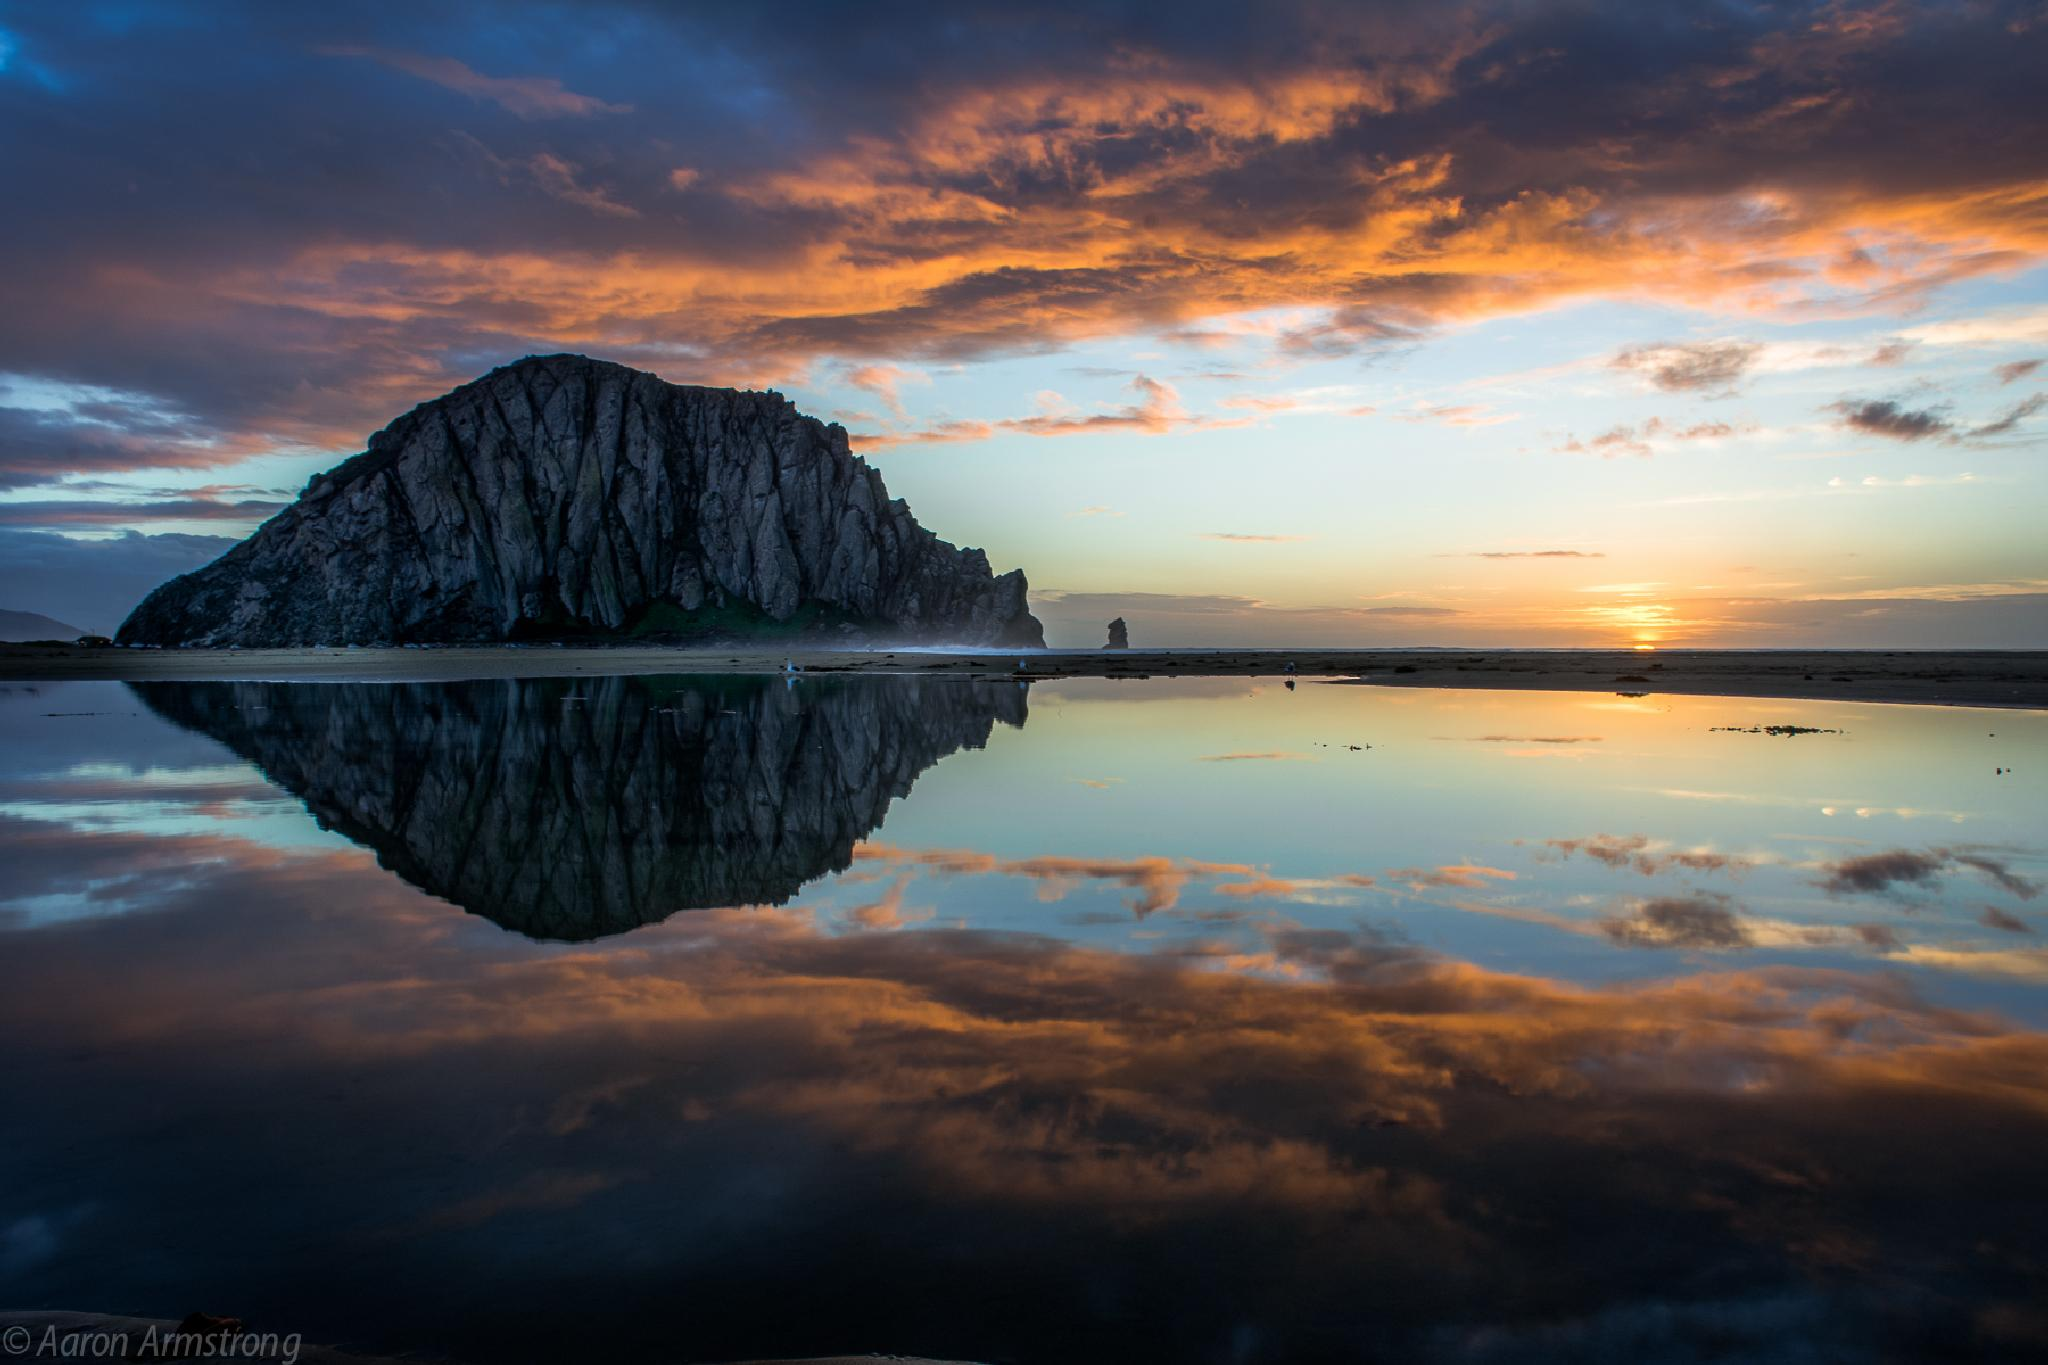 Another sunset reflection at Morro Rock by aaron.armstrong.336